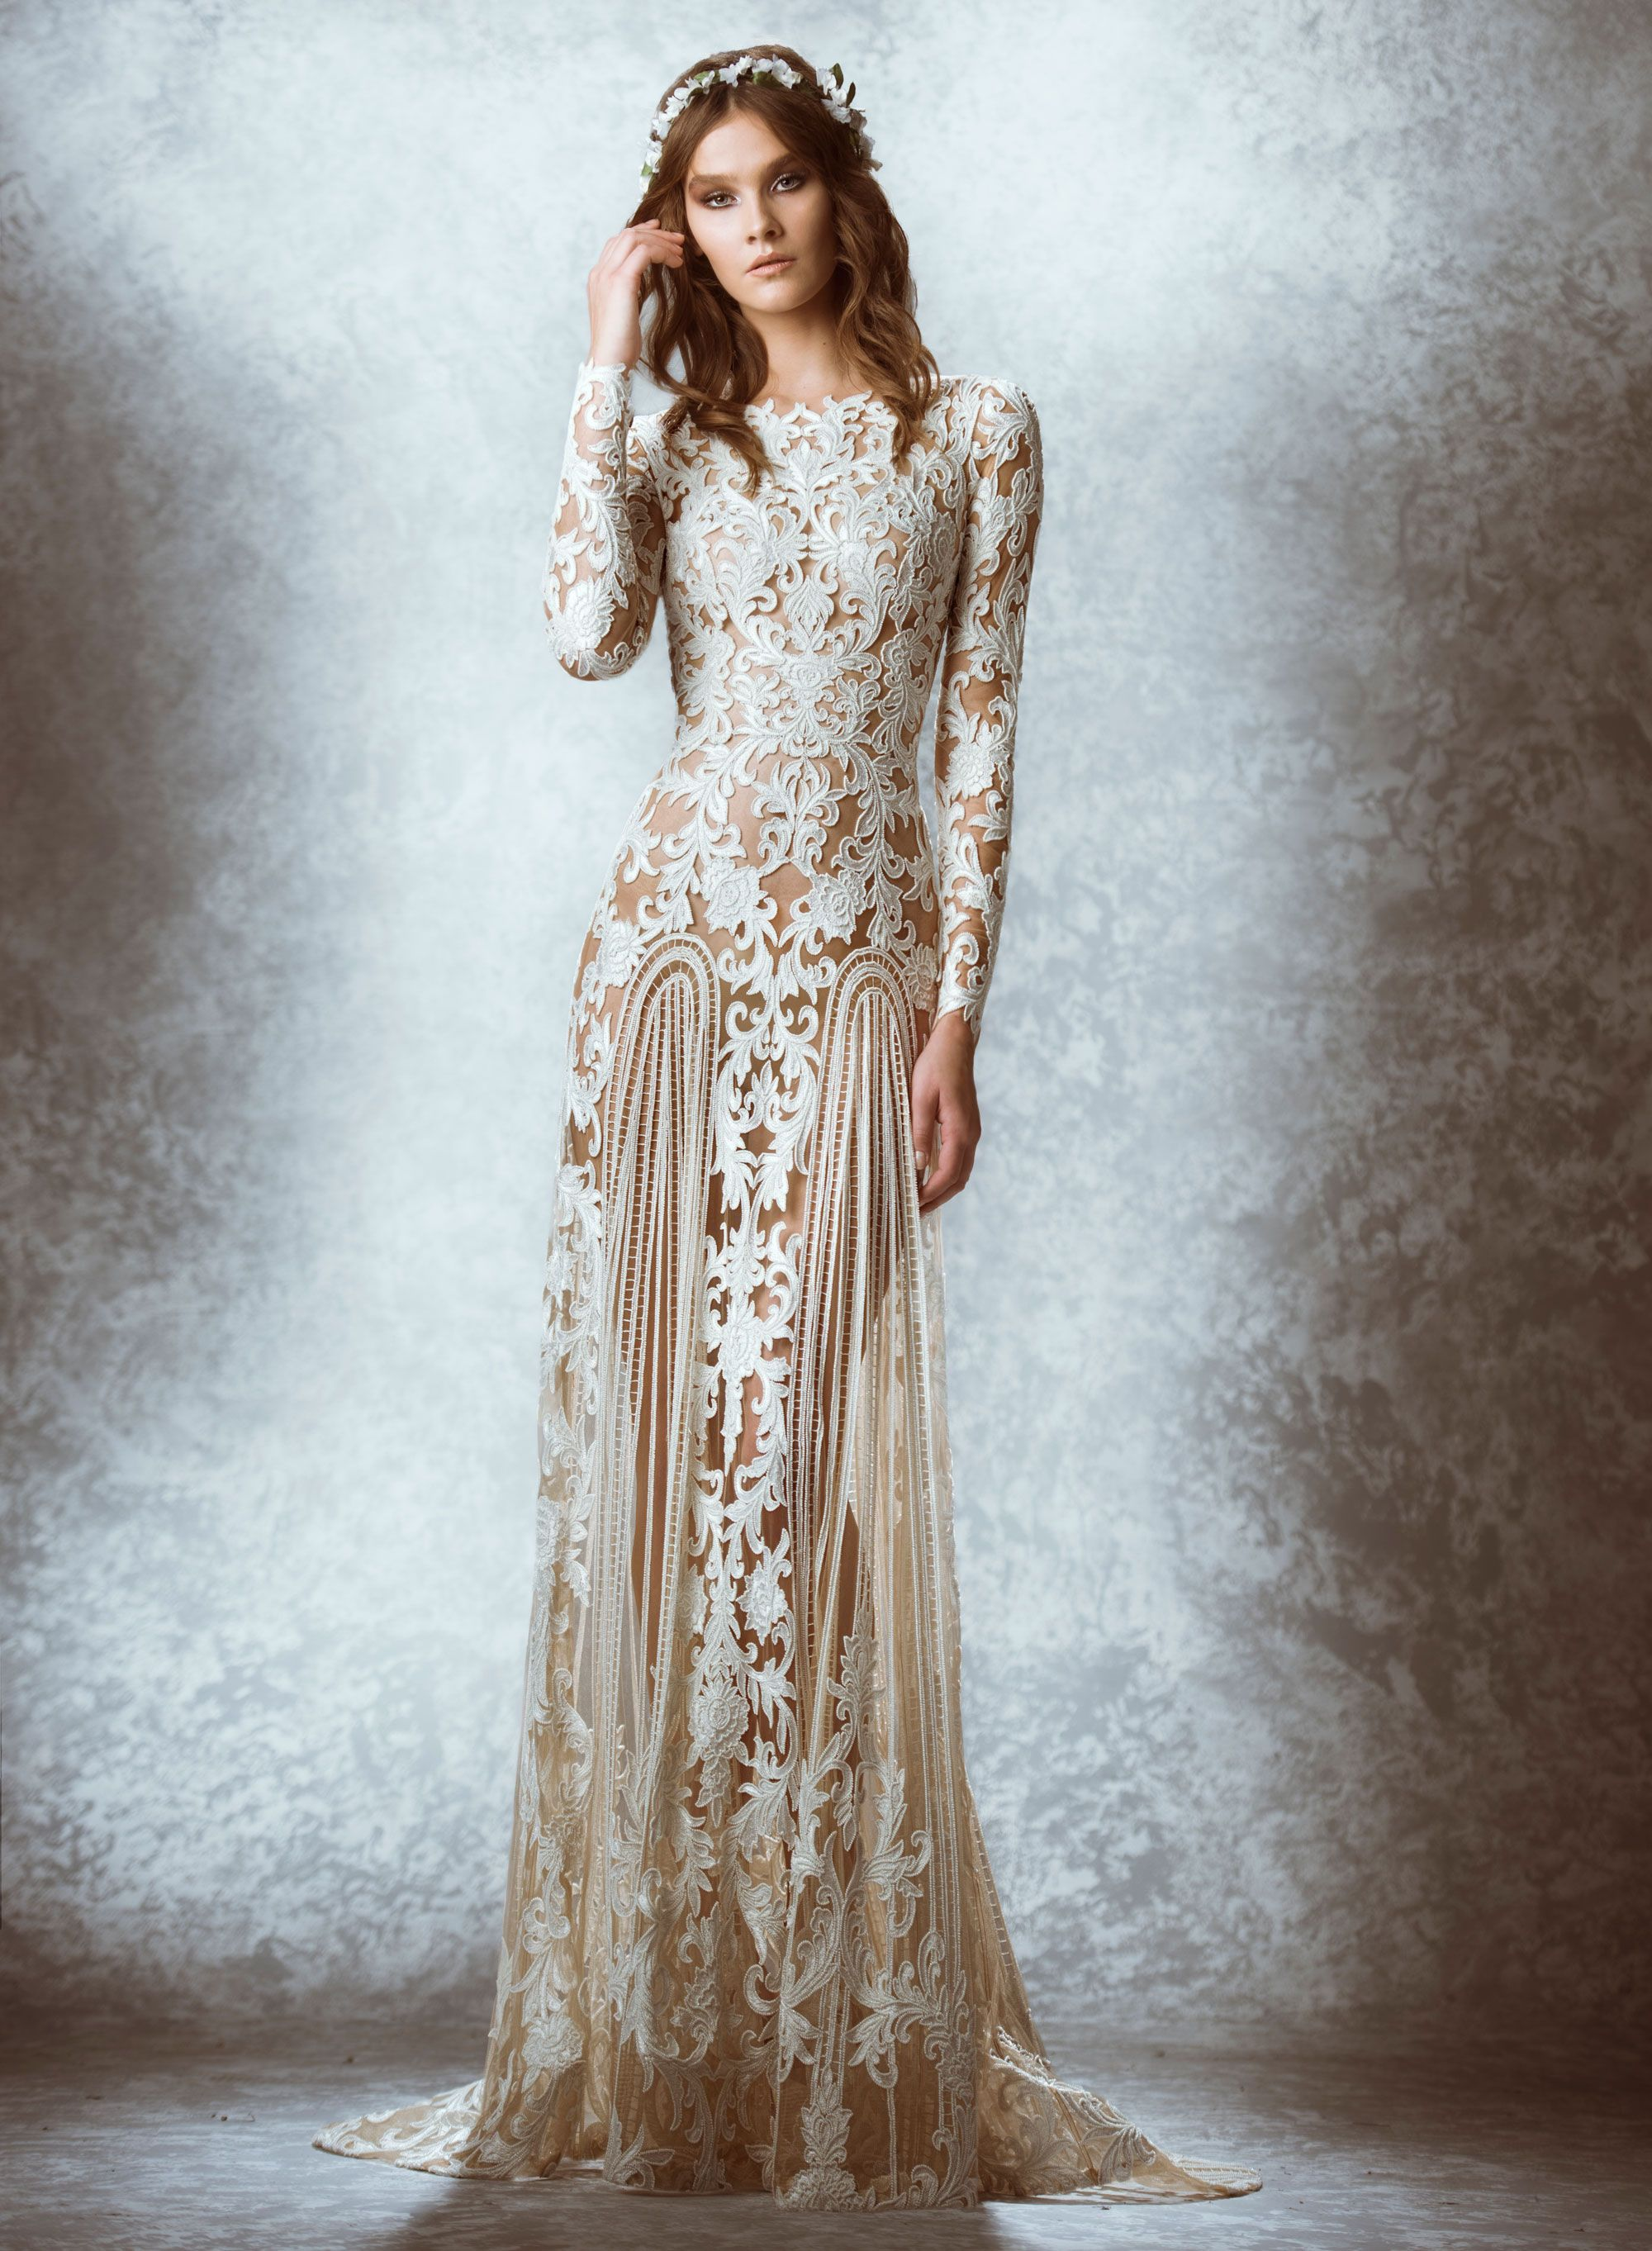 Zuhair Murad Bridal Collection Fall 2015 - Mauriane | Fashion ...